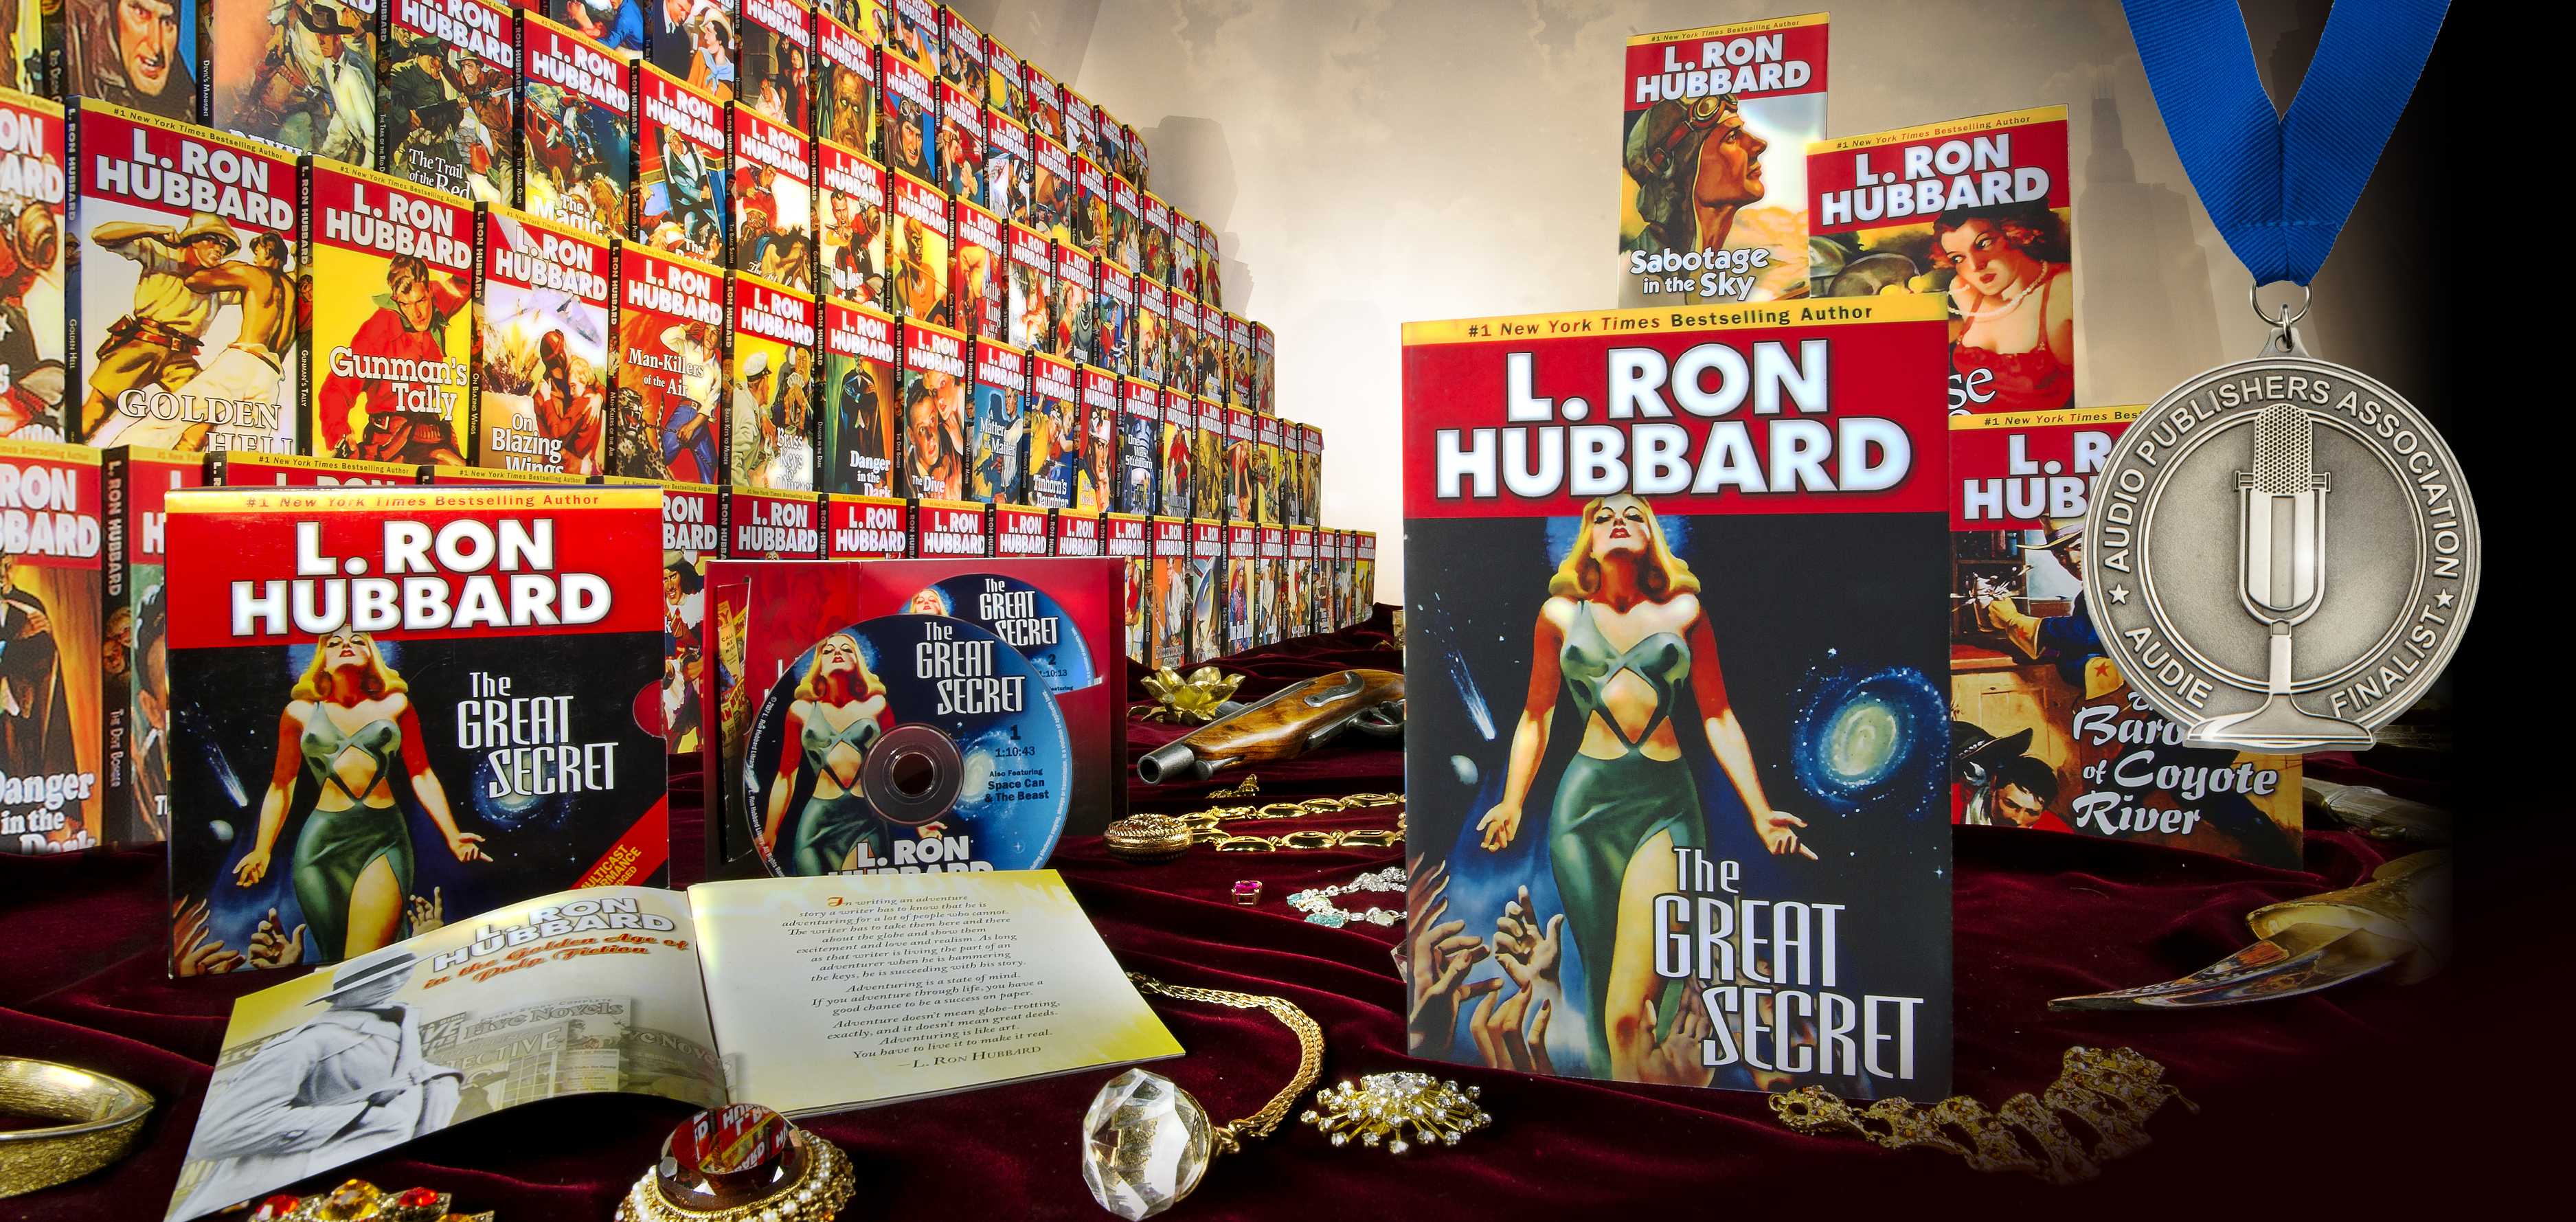 Stories from the Golden Age by L. Ron Hubbard